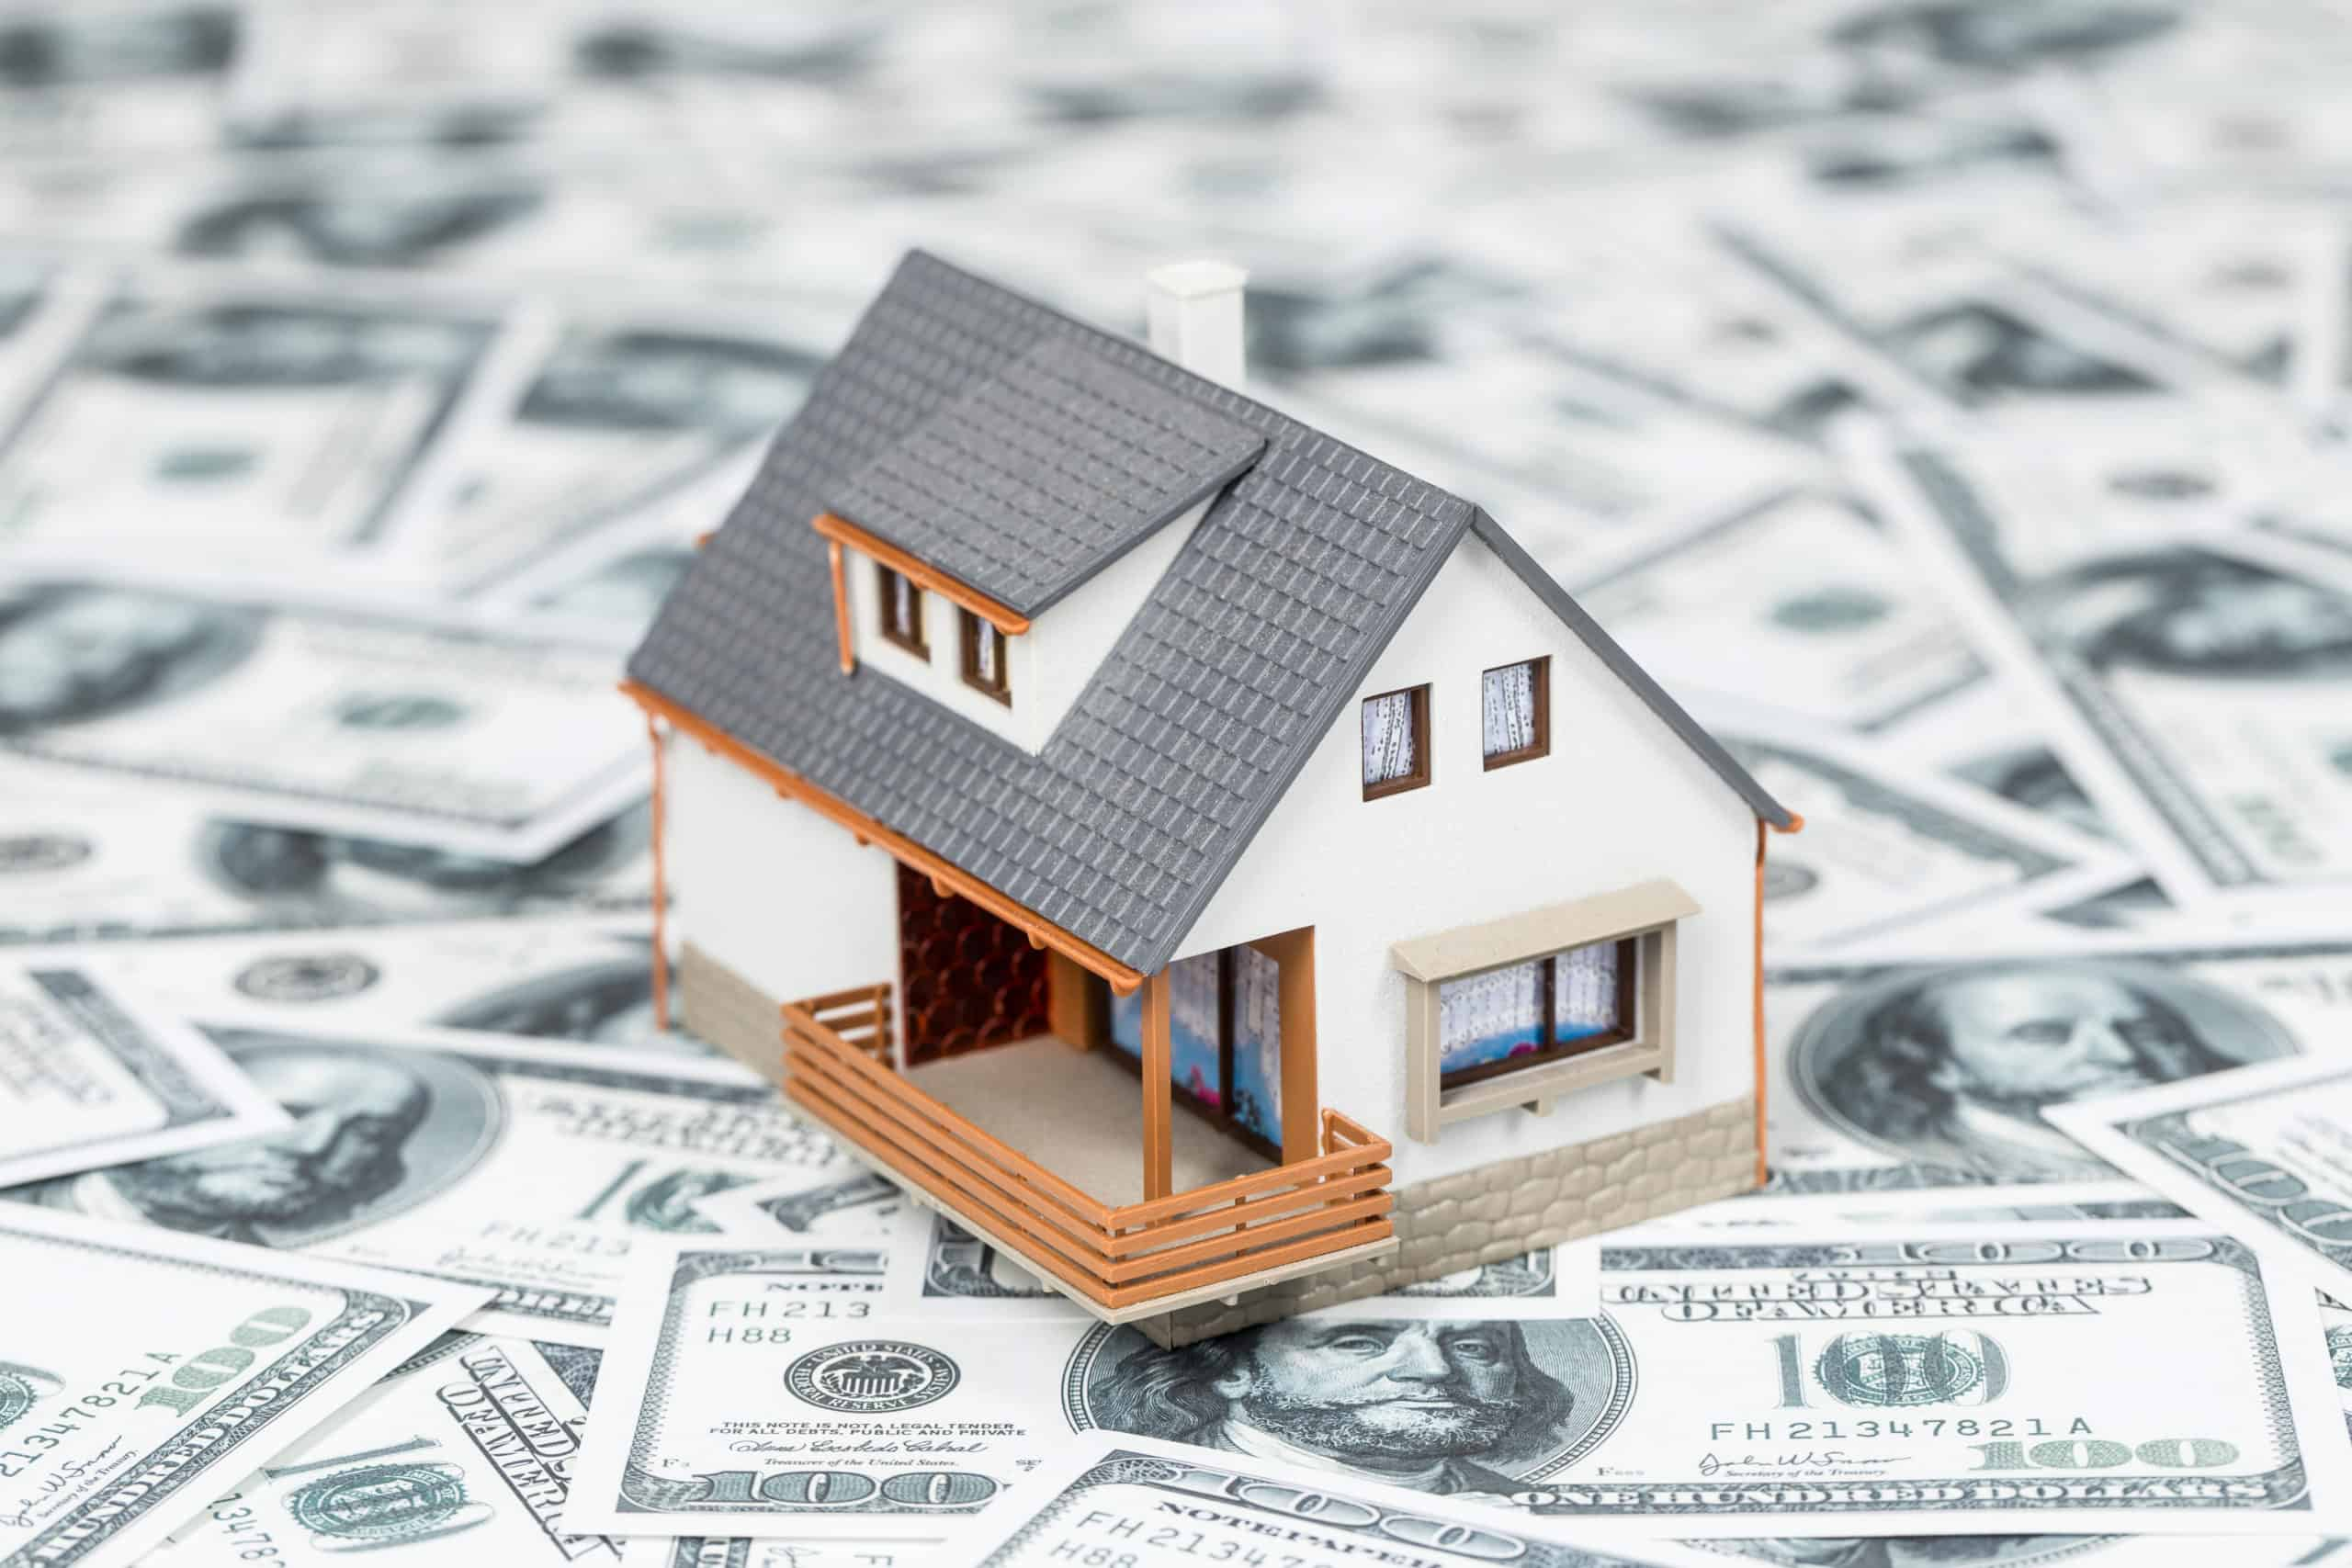 How much will I pay for housing?